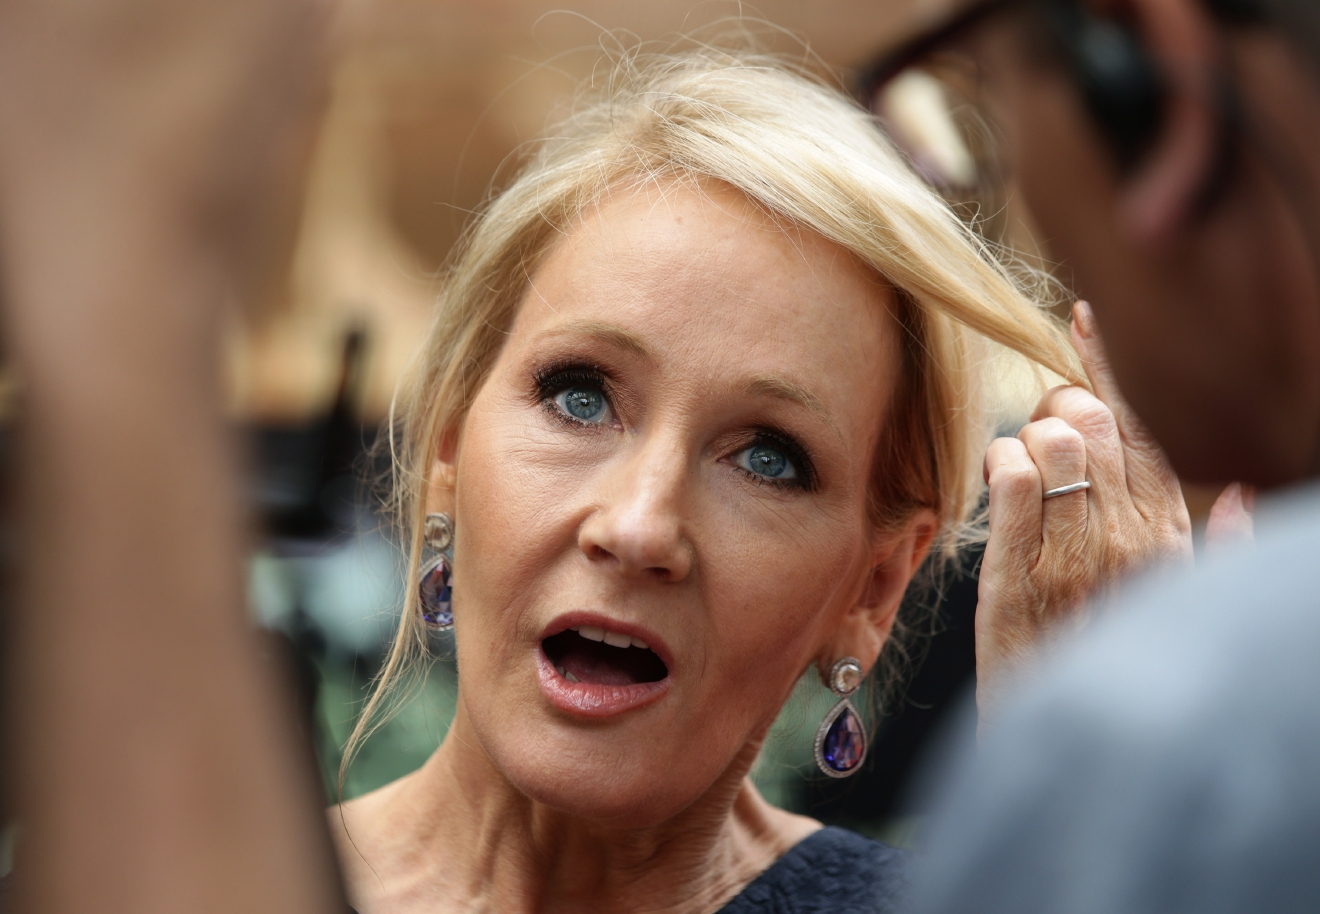 Writer J.K. Rowling arrives at gala performance of Harry Potter and the Cursed Child, at the Palace Theatre in central London, Saturday, July 30, 2016. (Yui Mok/PA via AP)